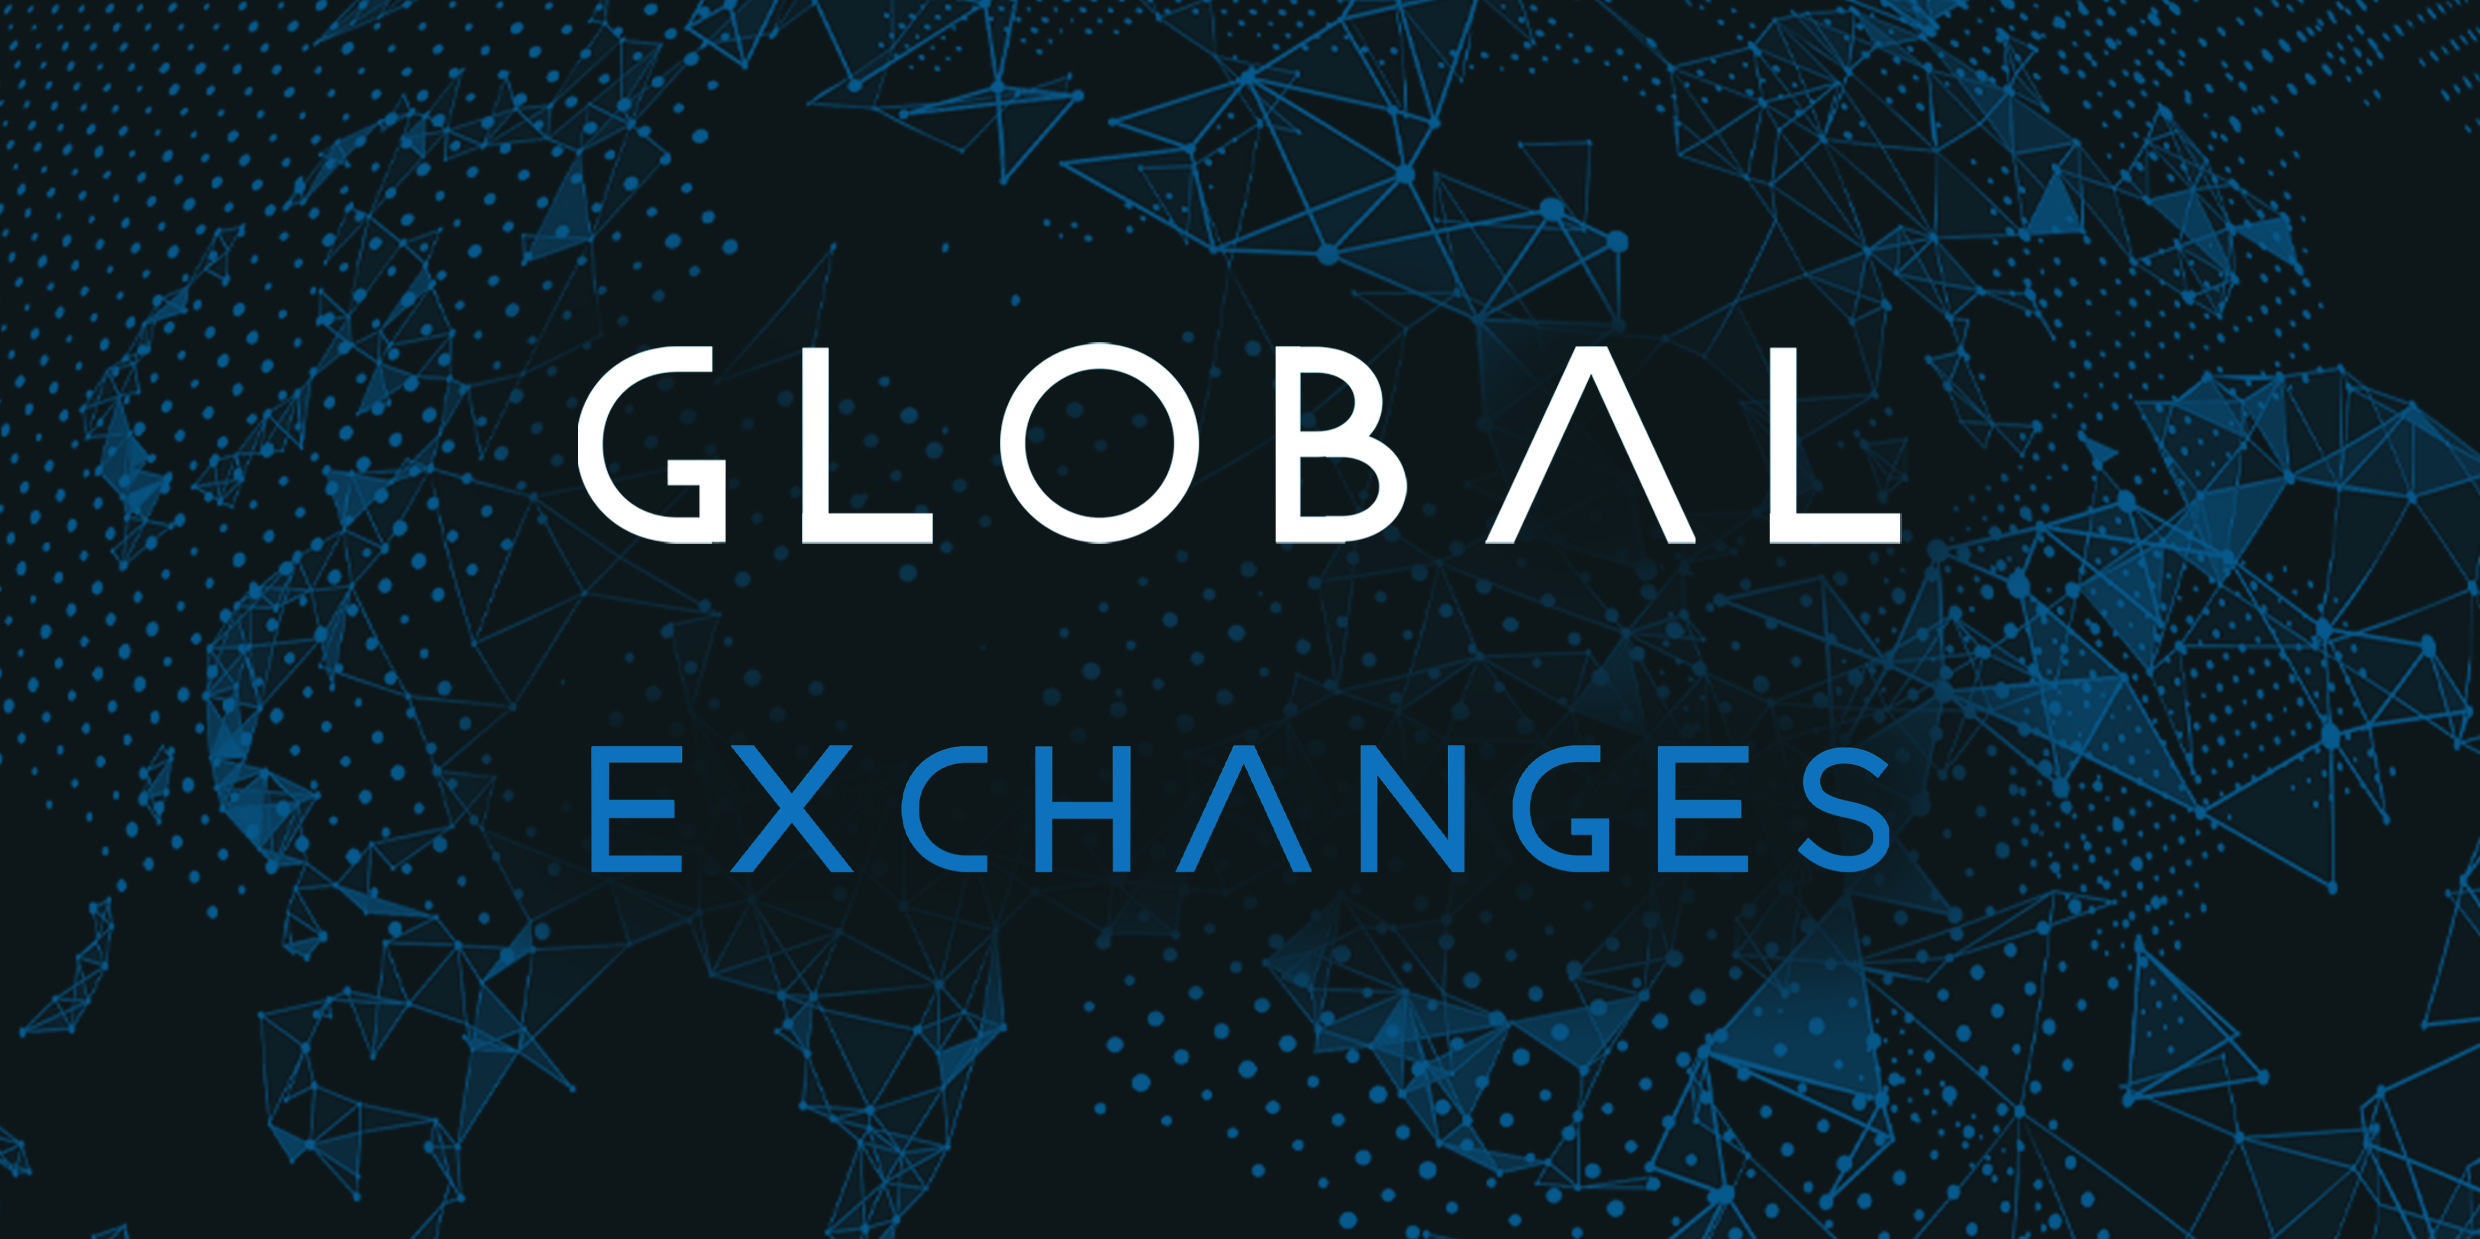 Global Exchanges